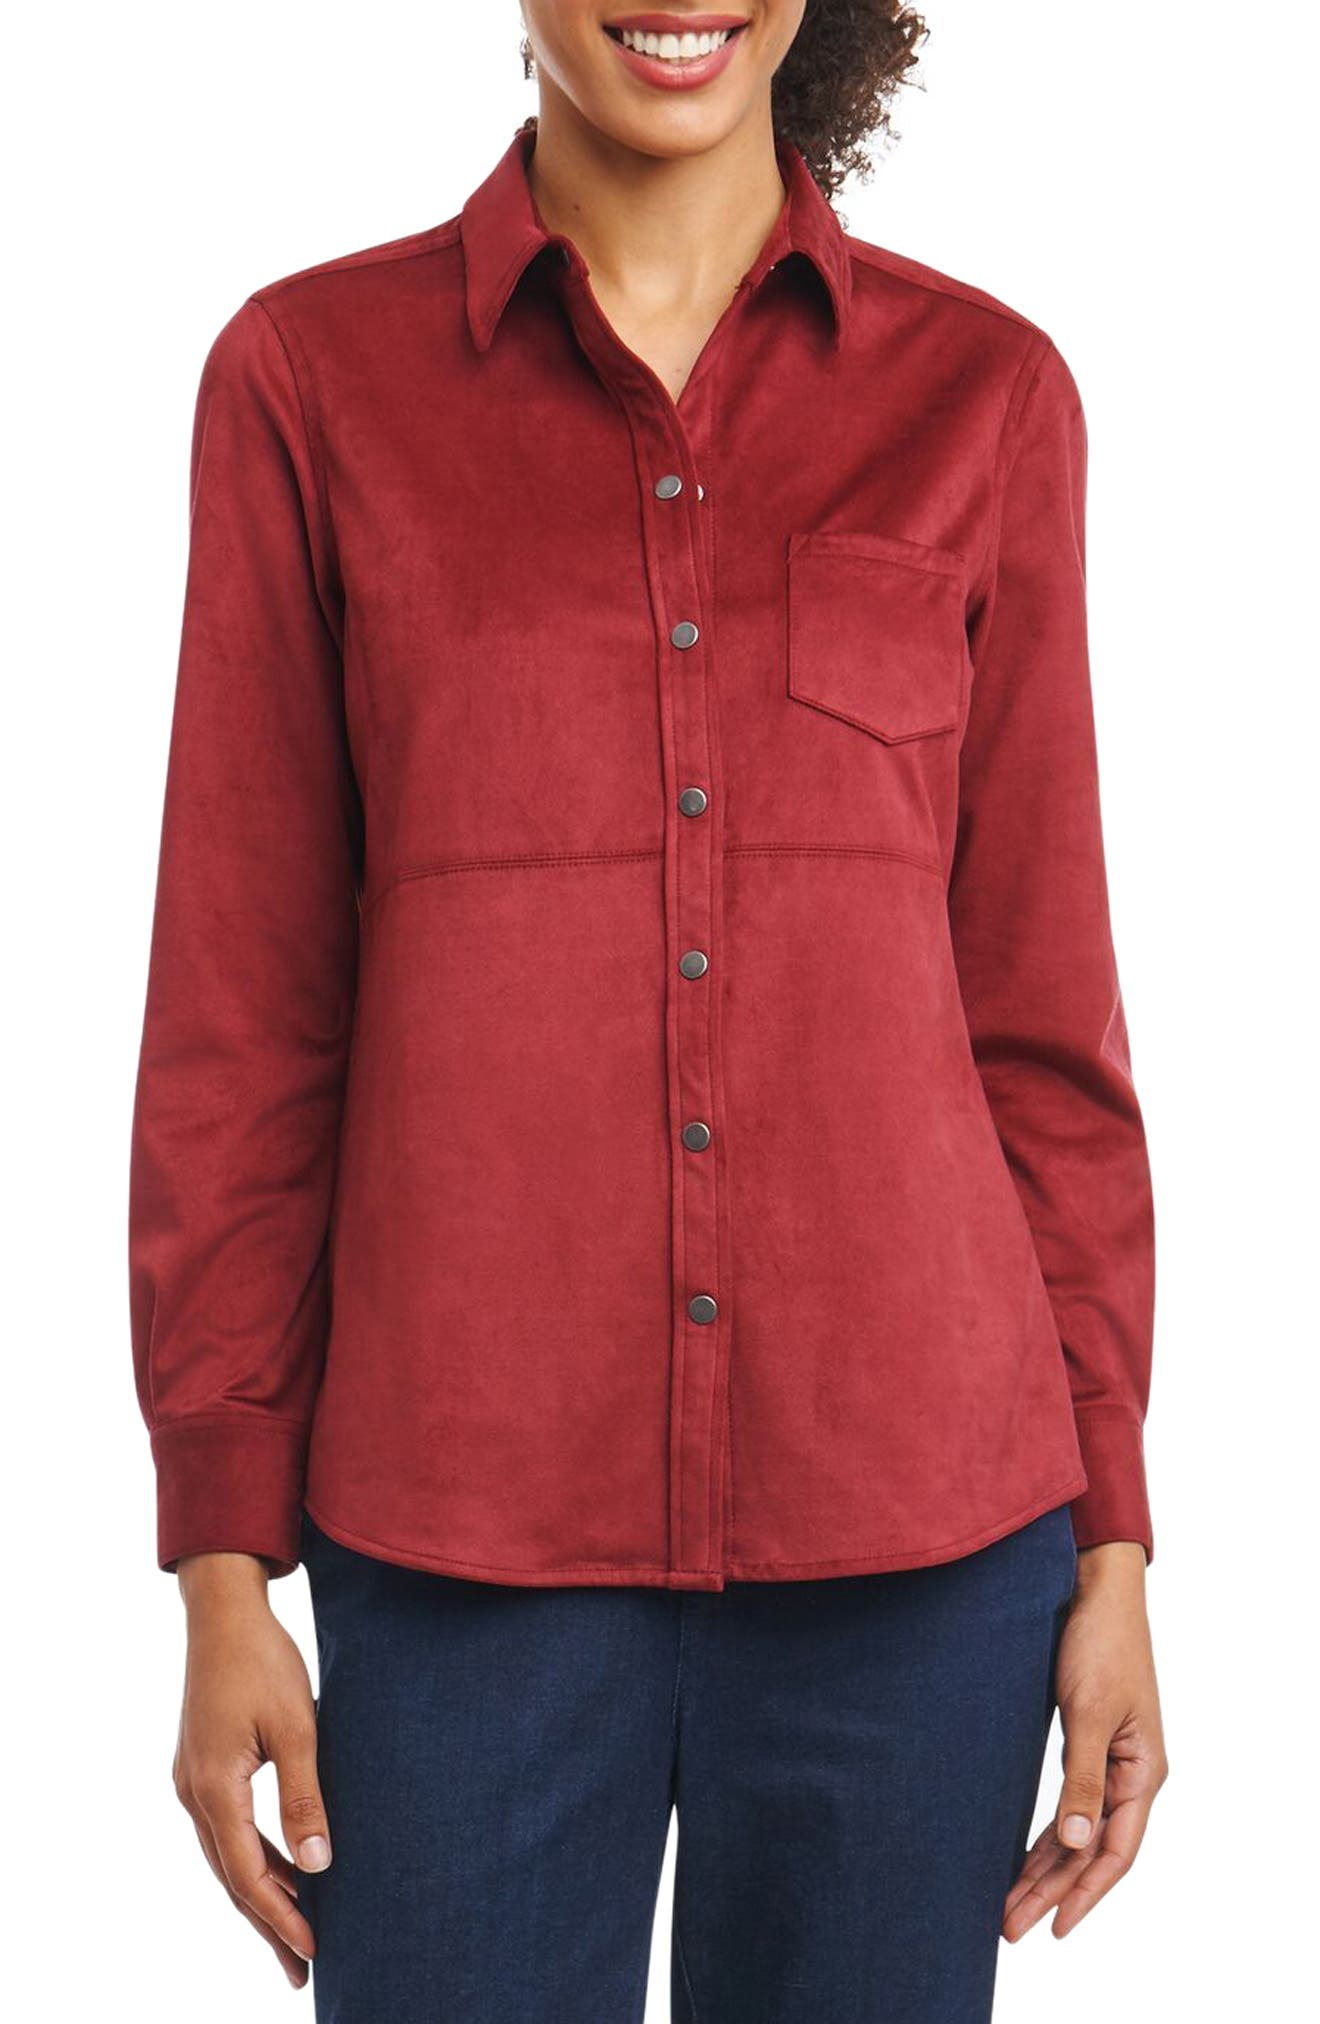 Jena Faux Suede Shirt,                             Main thumbnail 1, color,                             Roseberry